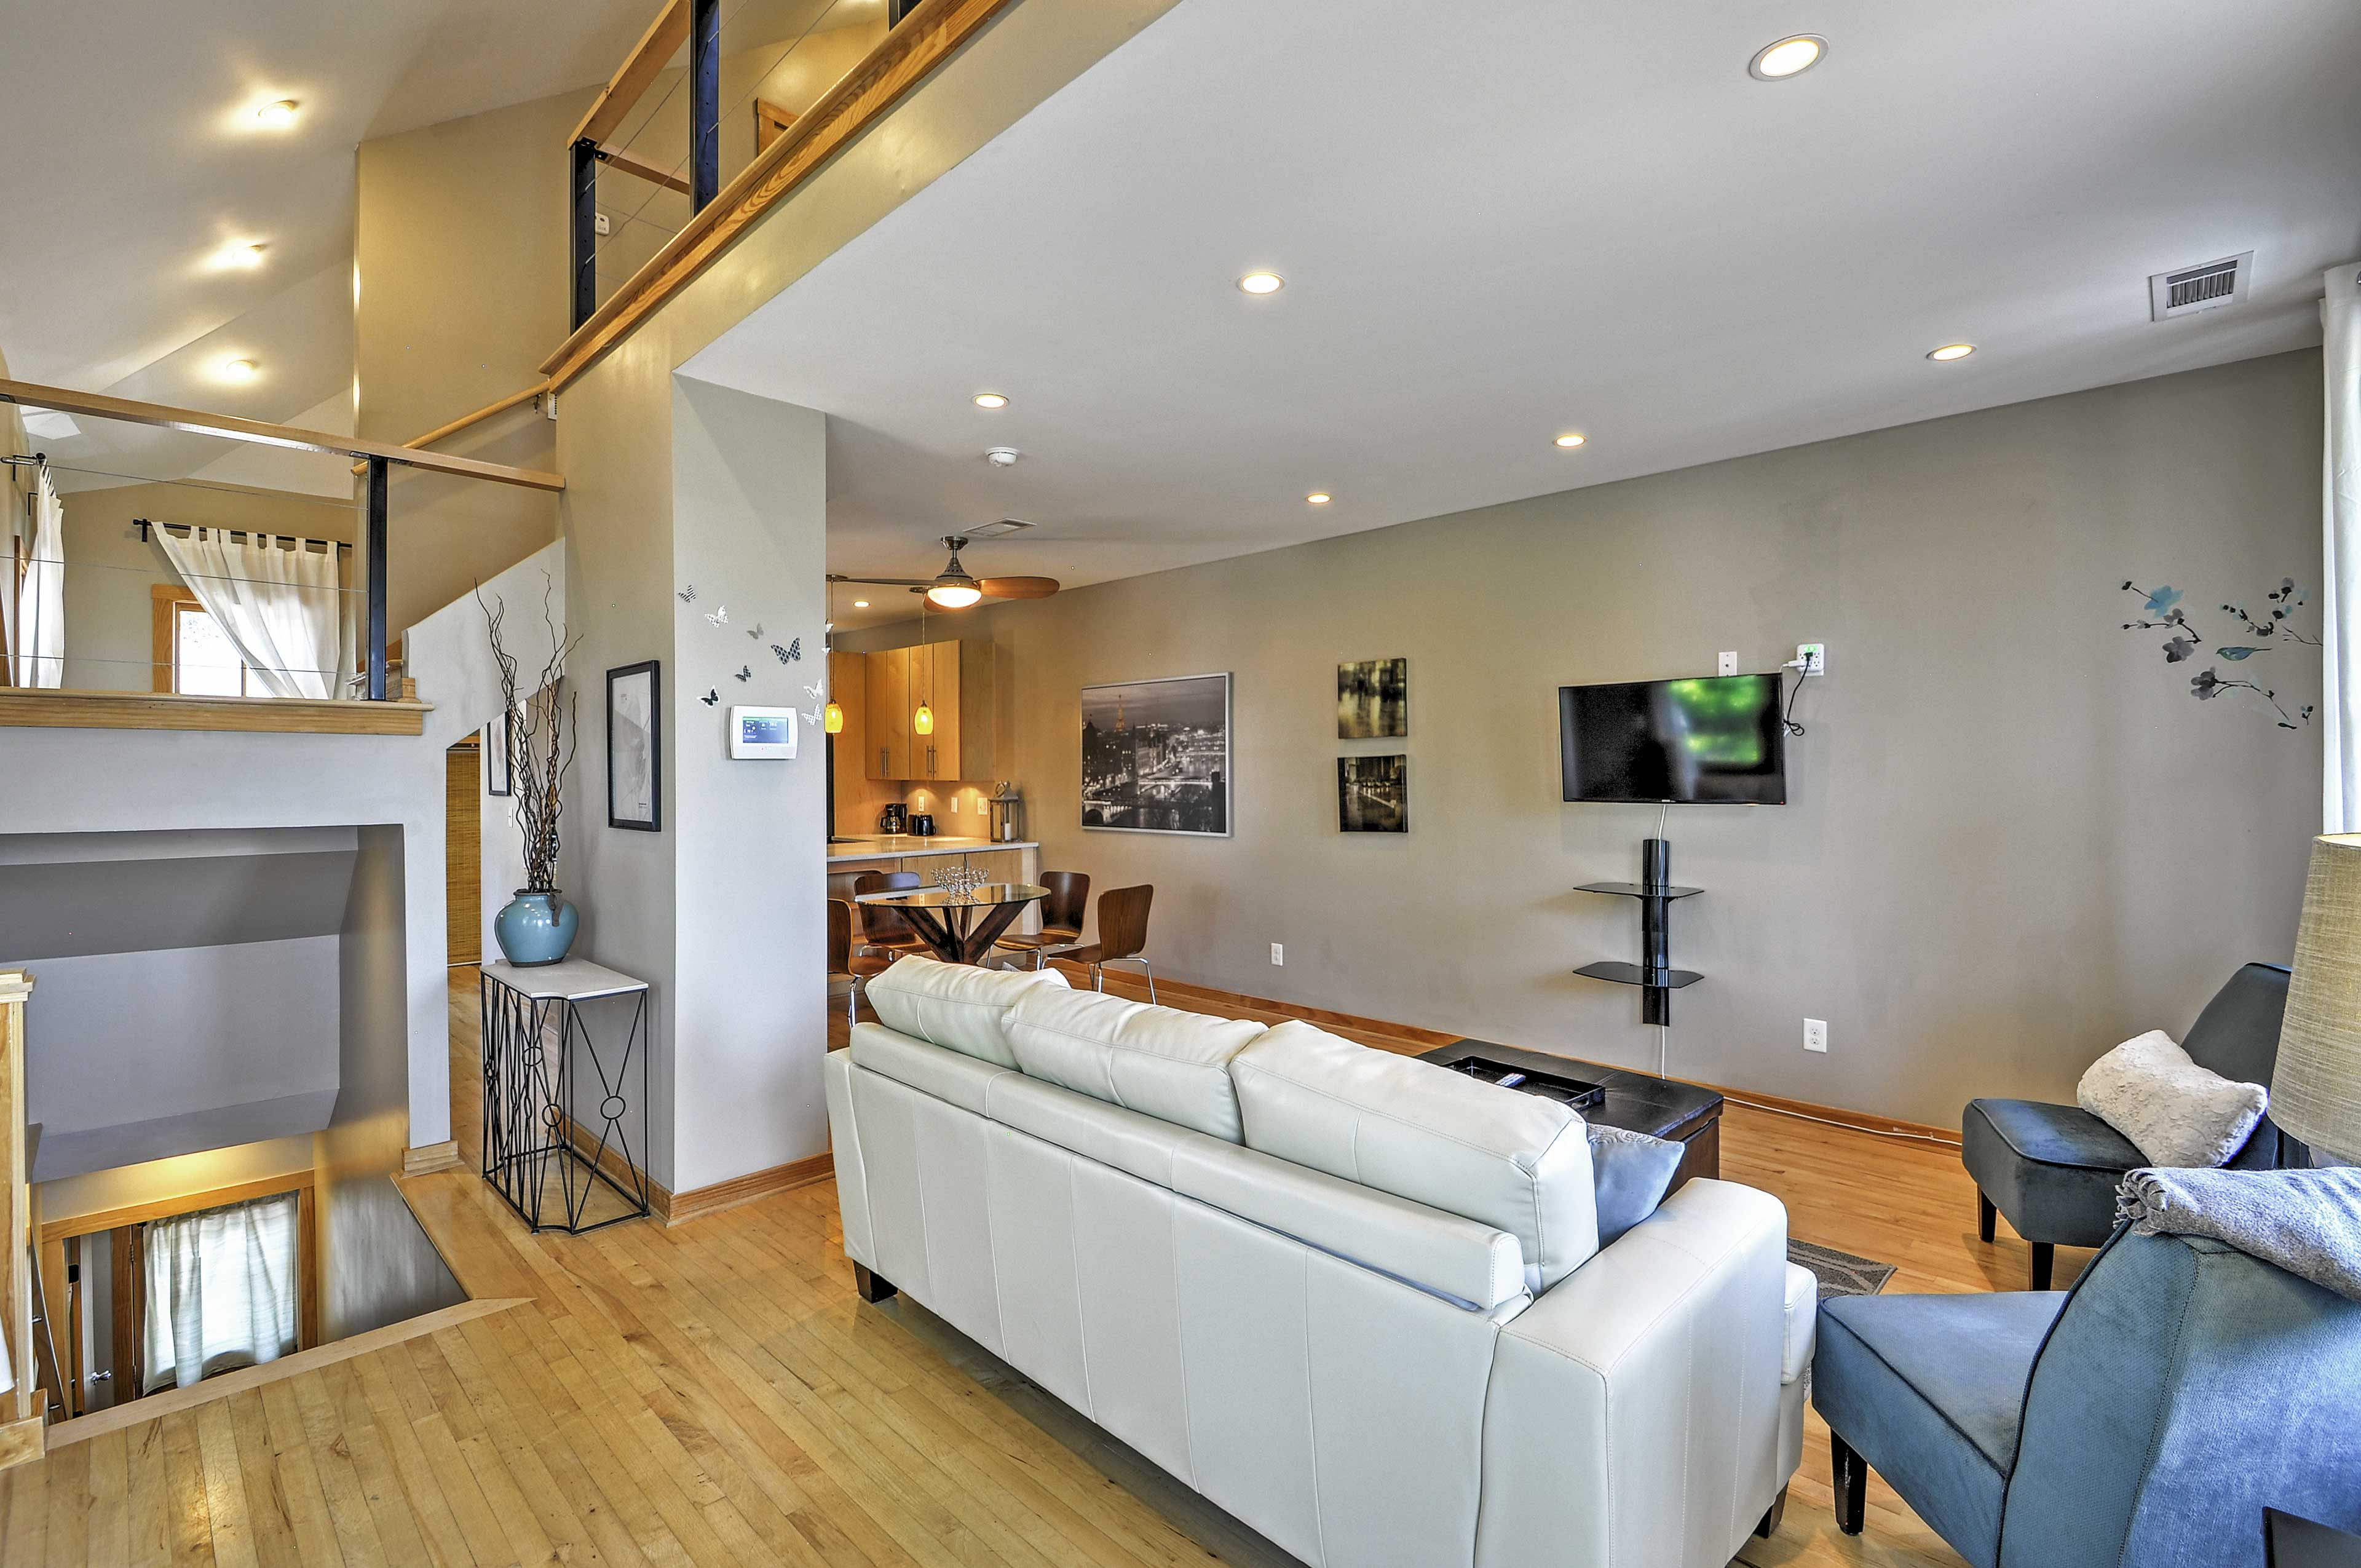 Gorgeous wood floors can found throughout.